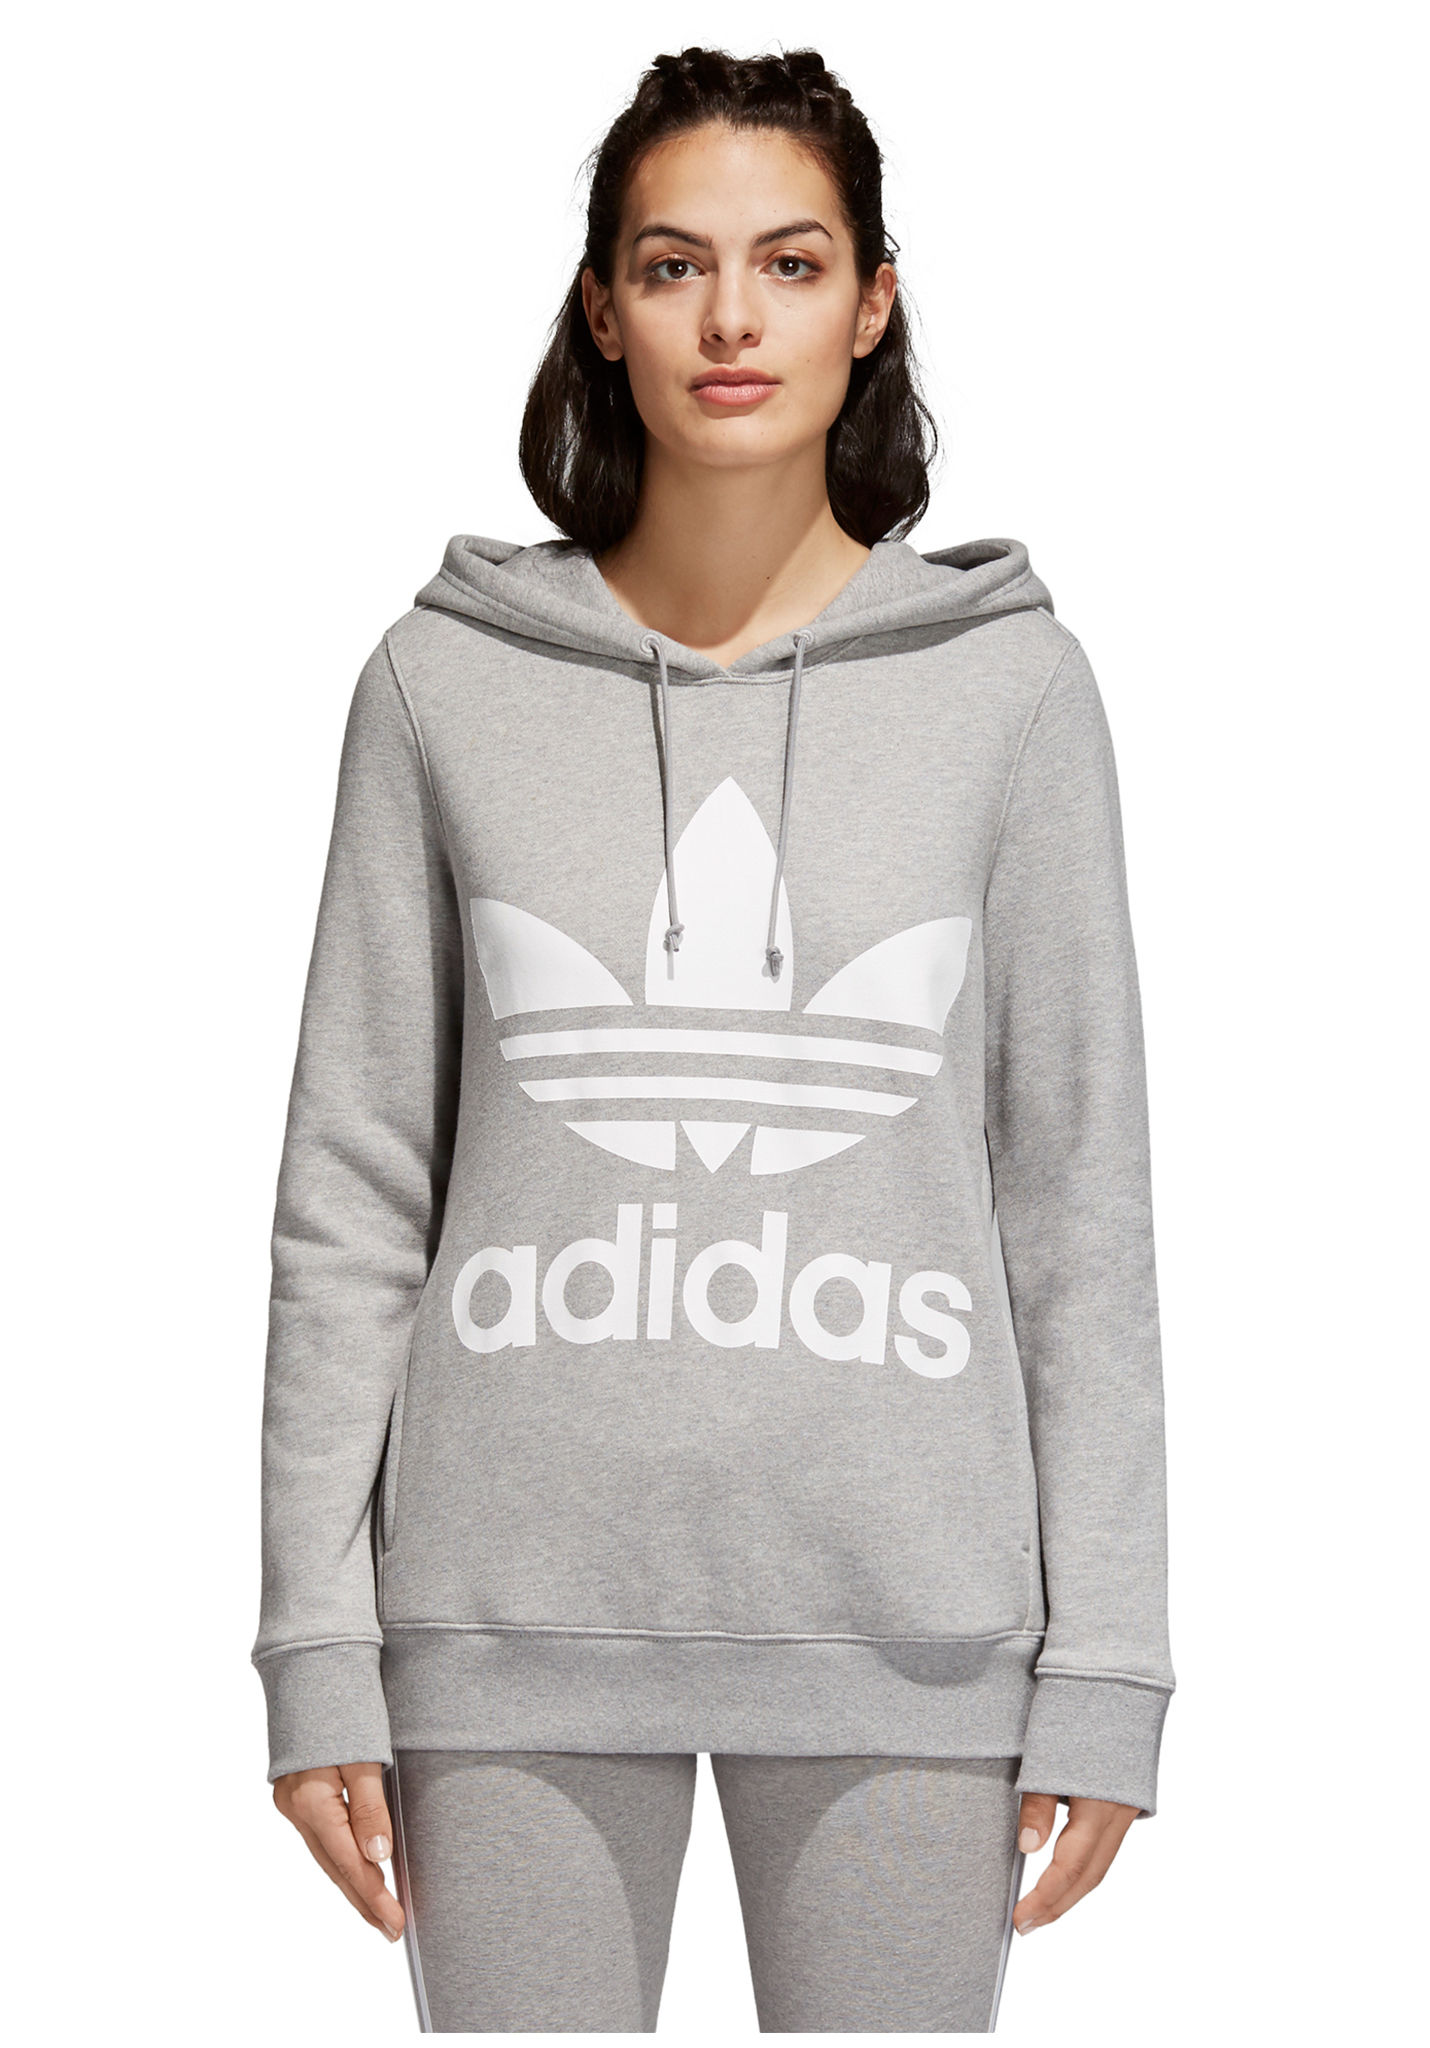 ff342d93 Womens Adidas Originals Sweatshirt Grey | Lixnet AG